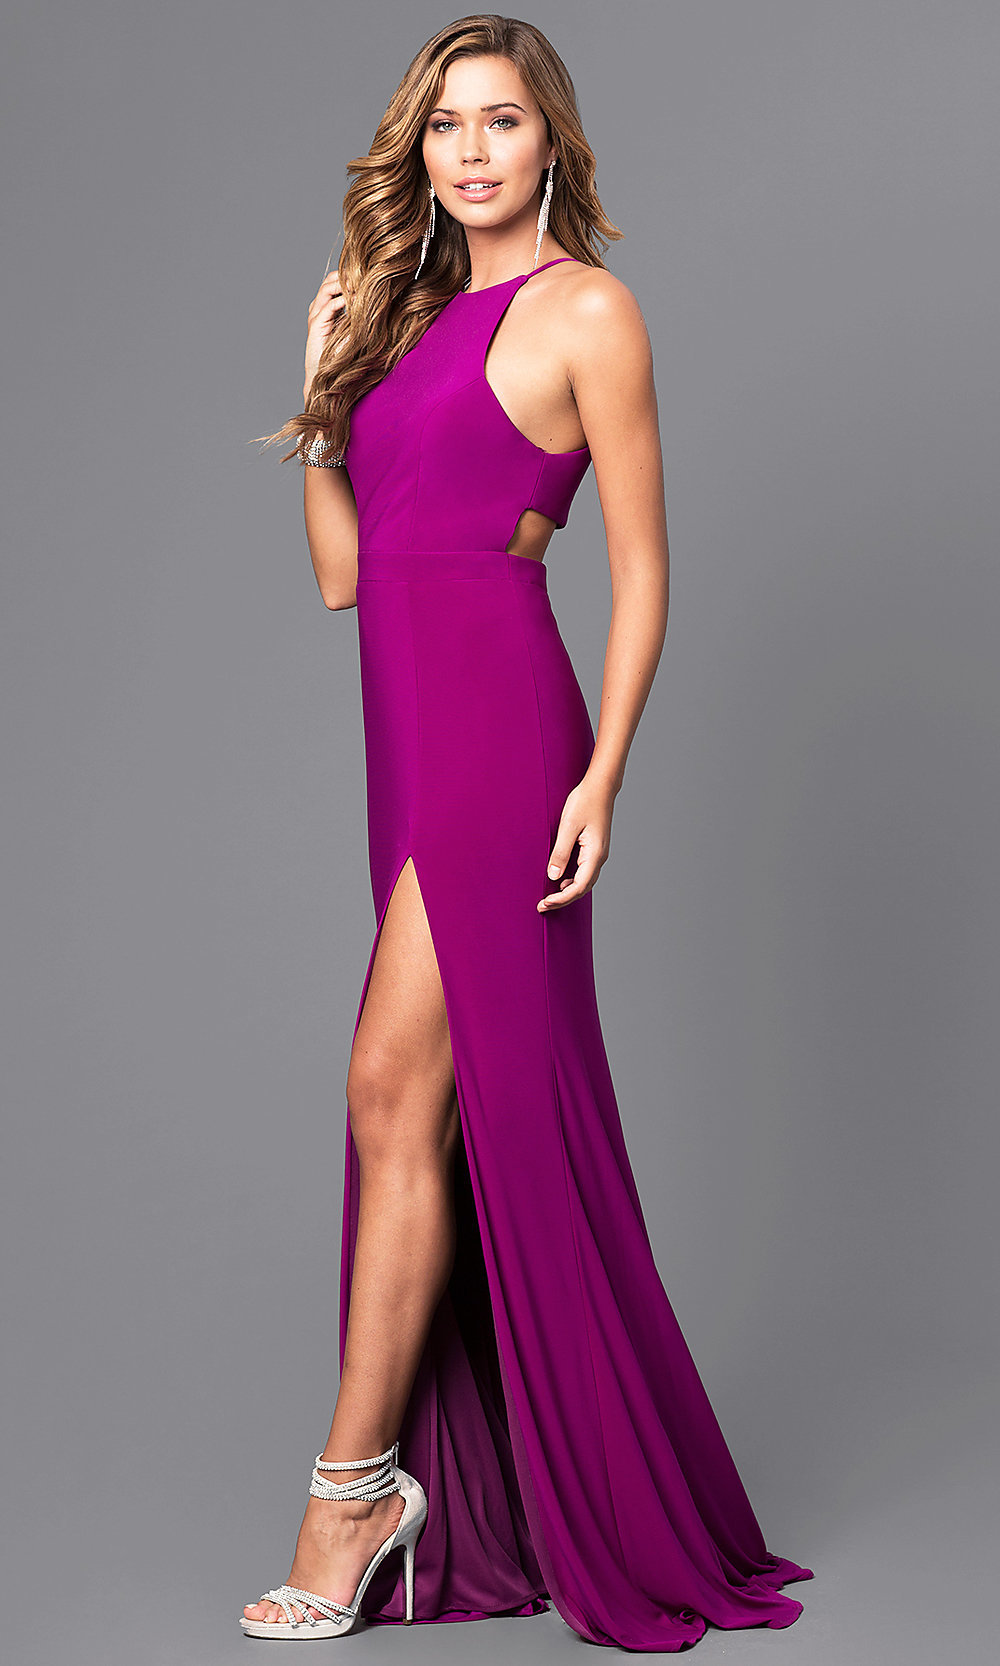 evenning dresses shopping online usa